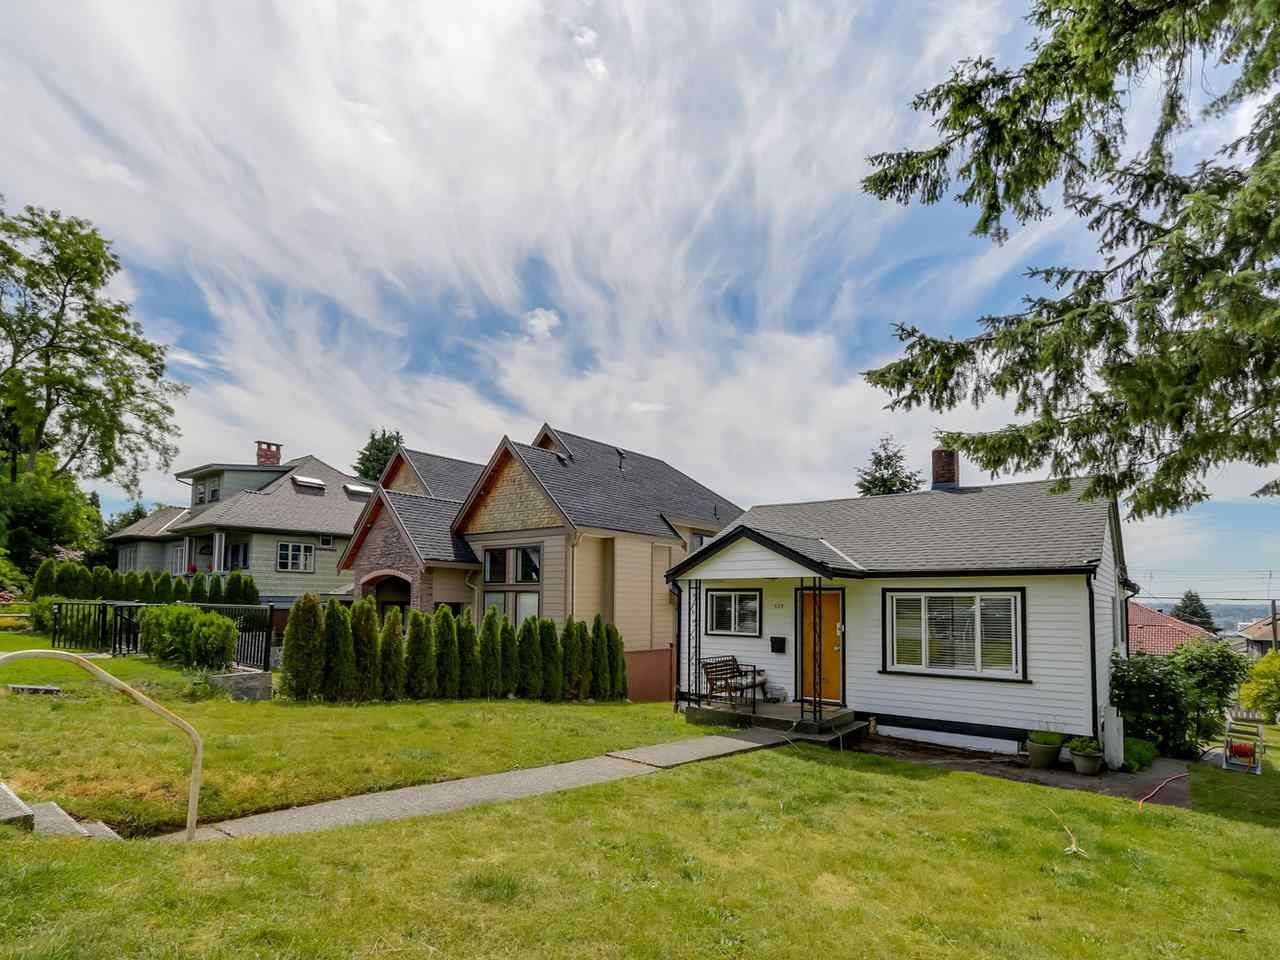 Main Photo: 523 E 5TH Street in North Vancouver: Lower Lonsdale House for sale : MLS®# R2077886